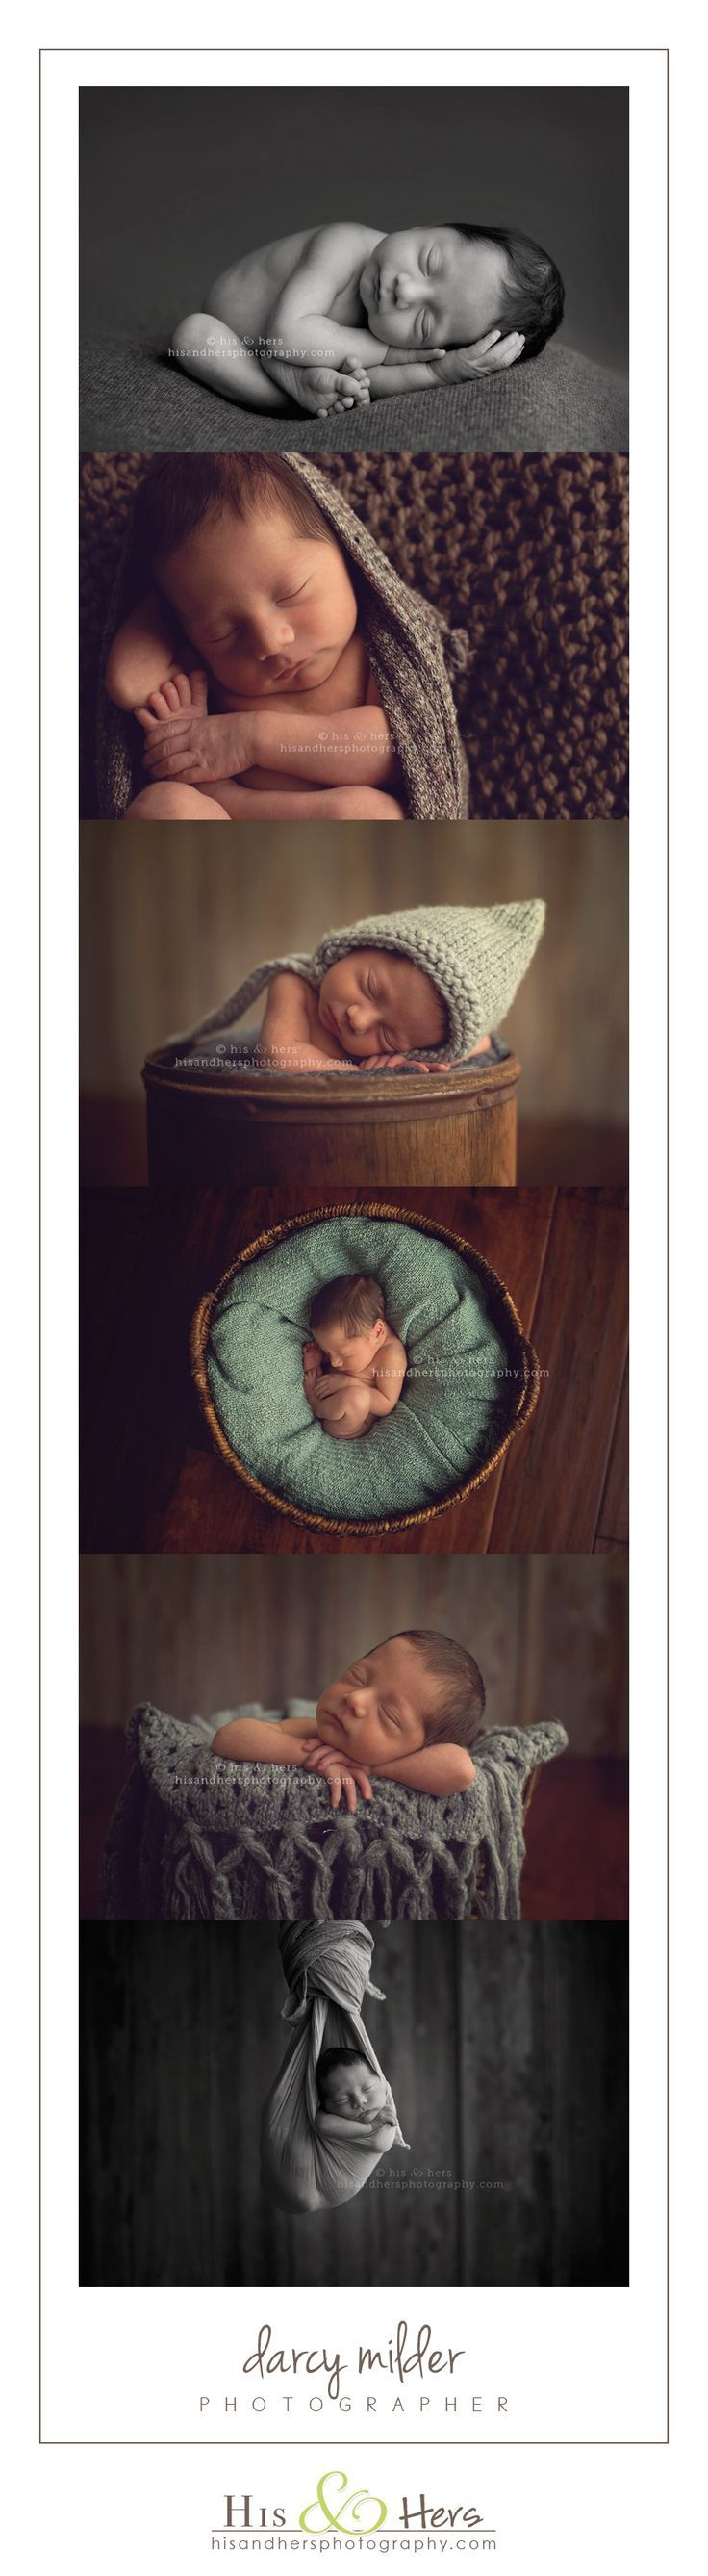 Iowa Newborn Photographer | Darcy Milder, His & Hers